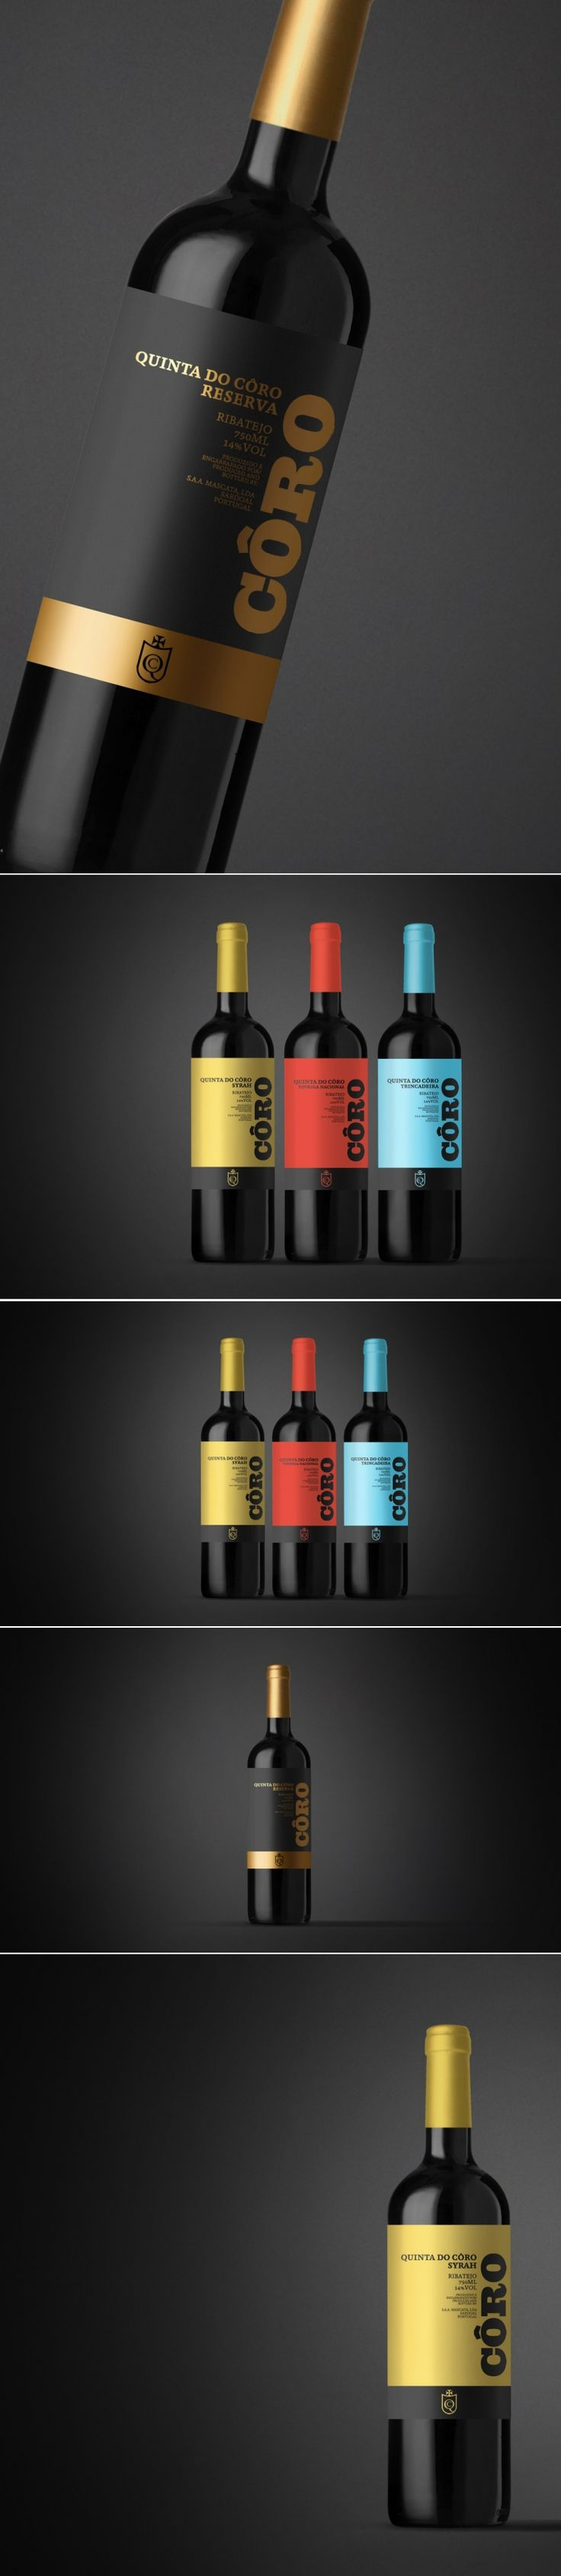 Concept: Quinta do Côro — The Dieline | Packaging & Branding Design & Innovation News